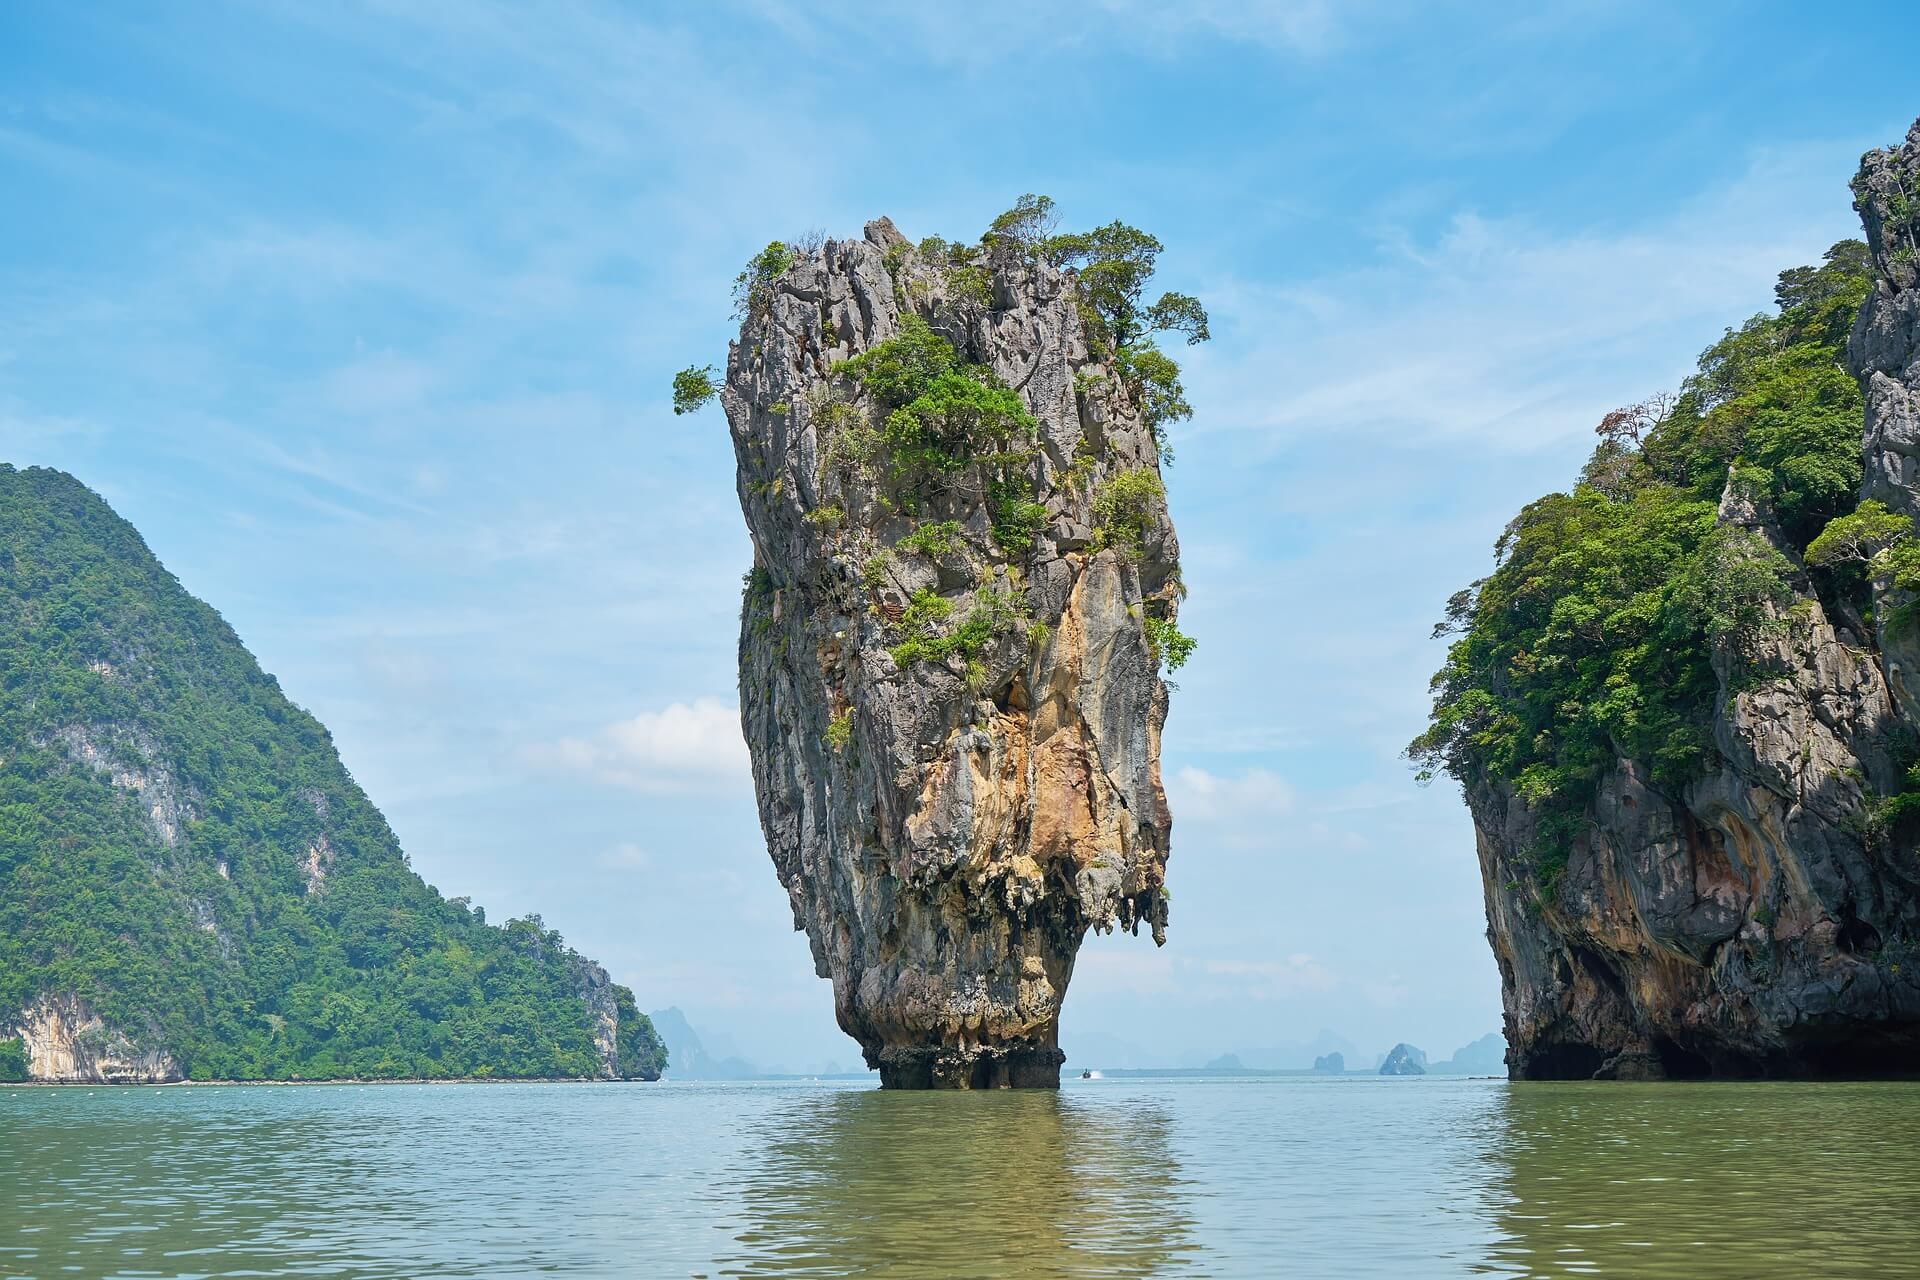 Day tour to James Bond Island - a great thing to do in Ao Nang, Krabi